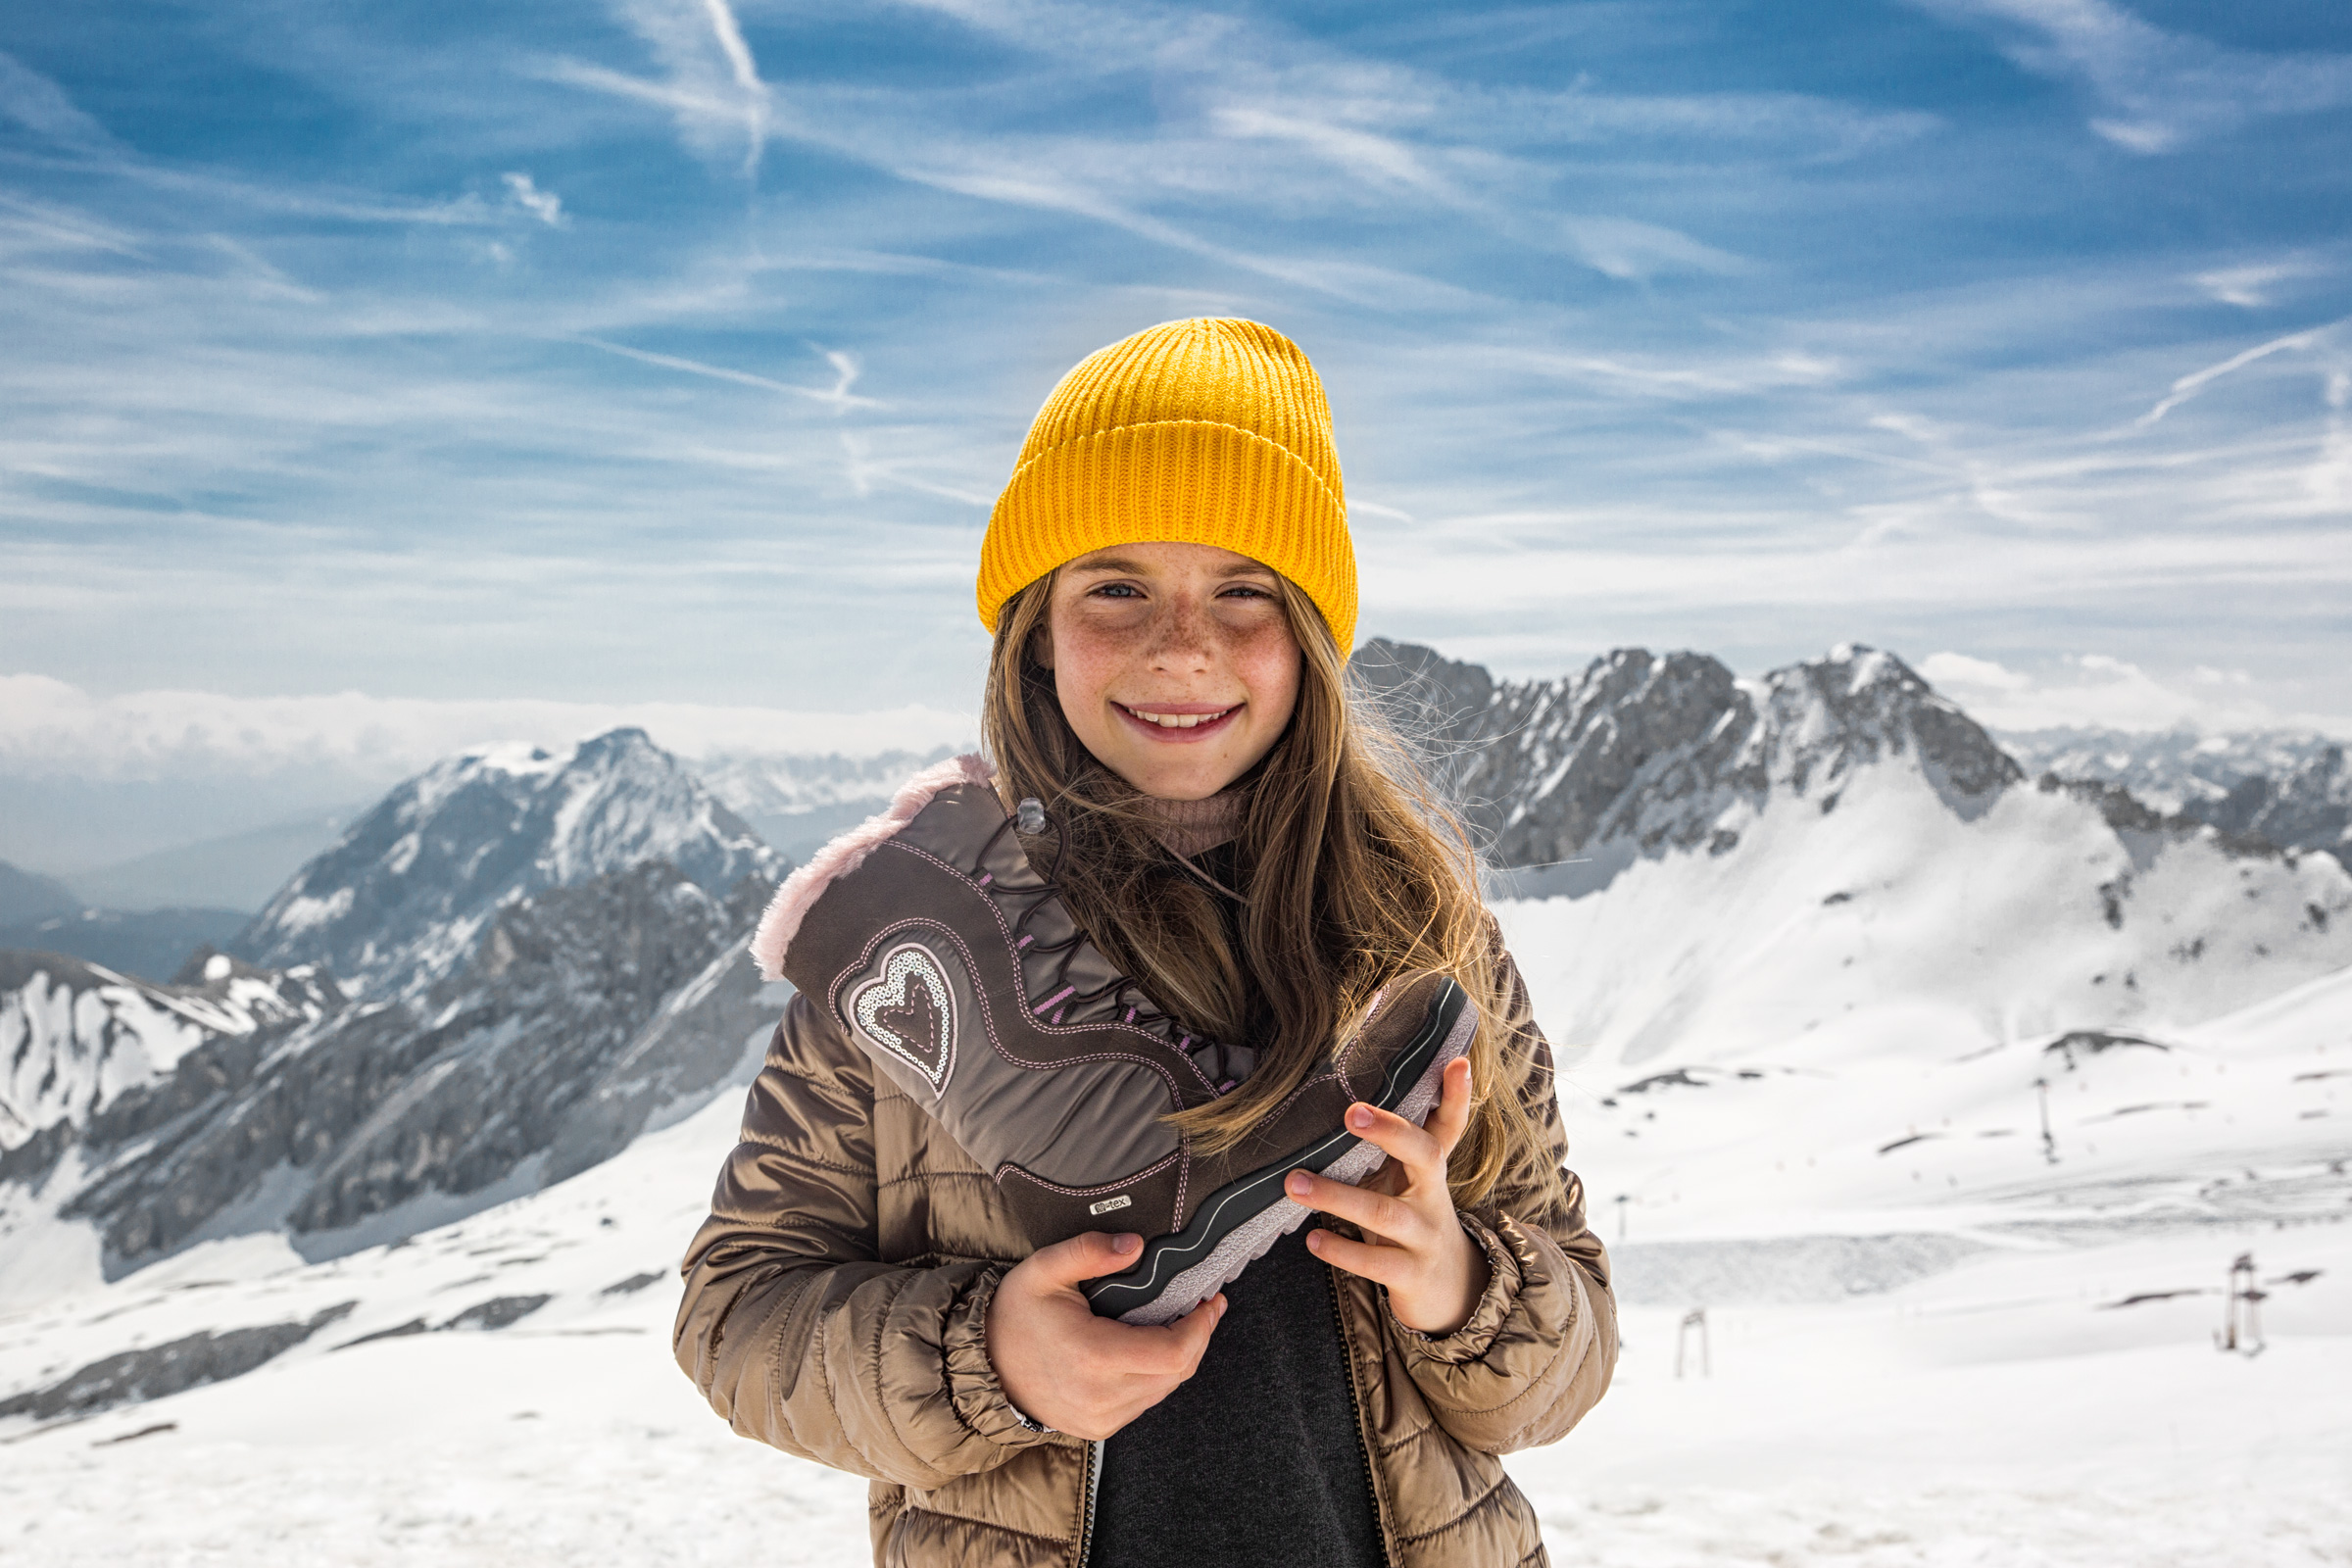 Junges Mädchen hält Kinder-Schneeschuh an einem sonnigen Tag vor Alpenpanorama. Young girl holding a children's-snow-boot on a sunny day in front of alps landscape.